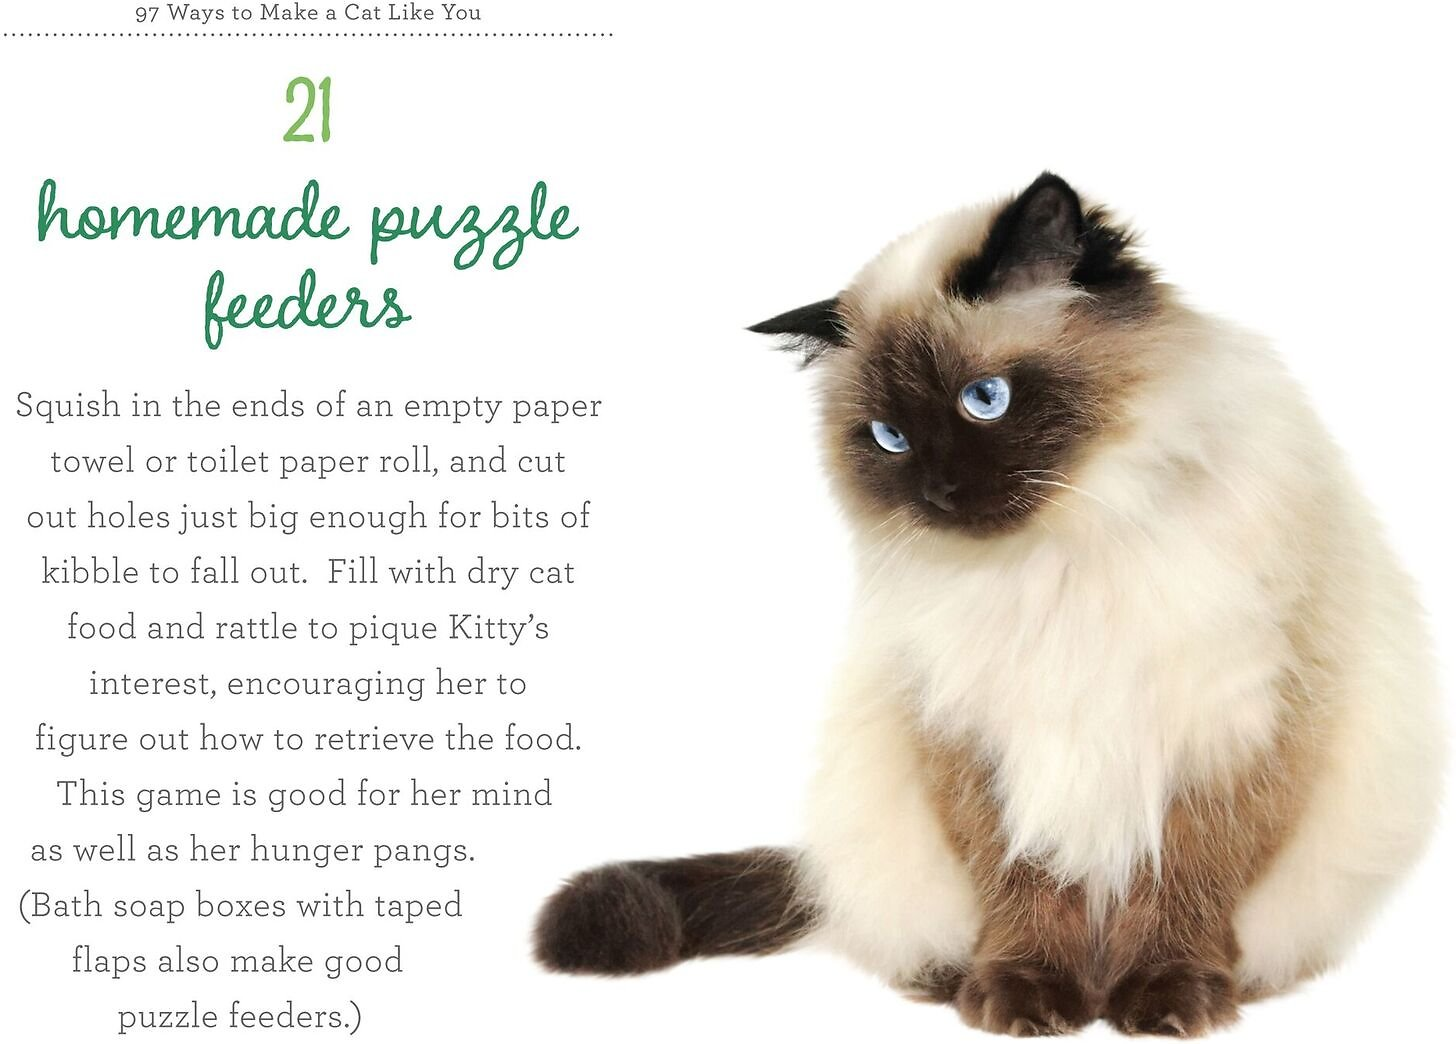 97 Ways to Make a Cat Like You Chewy